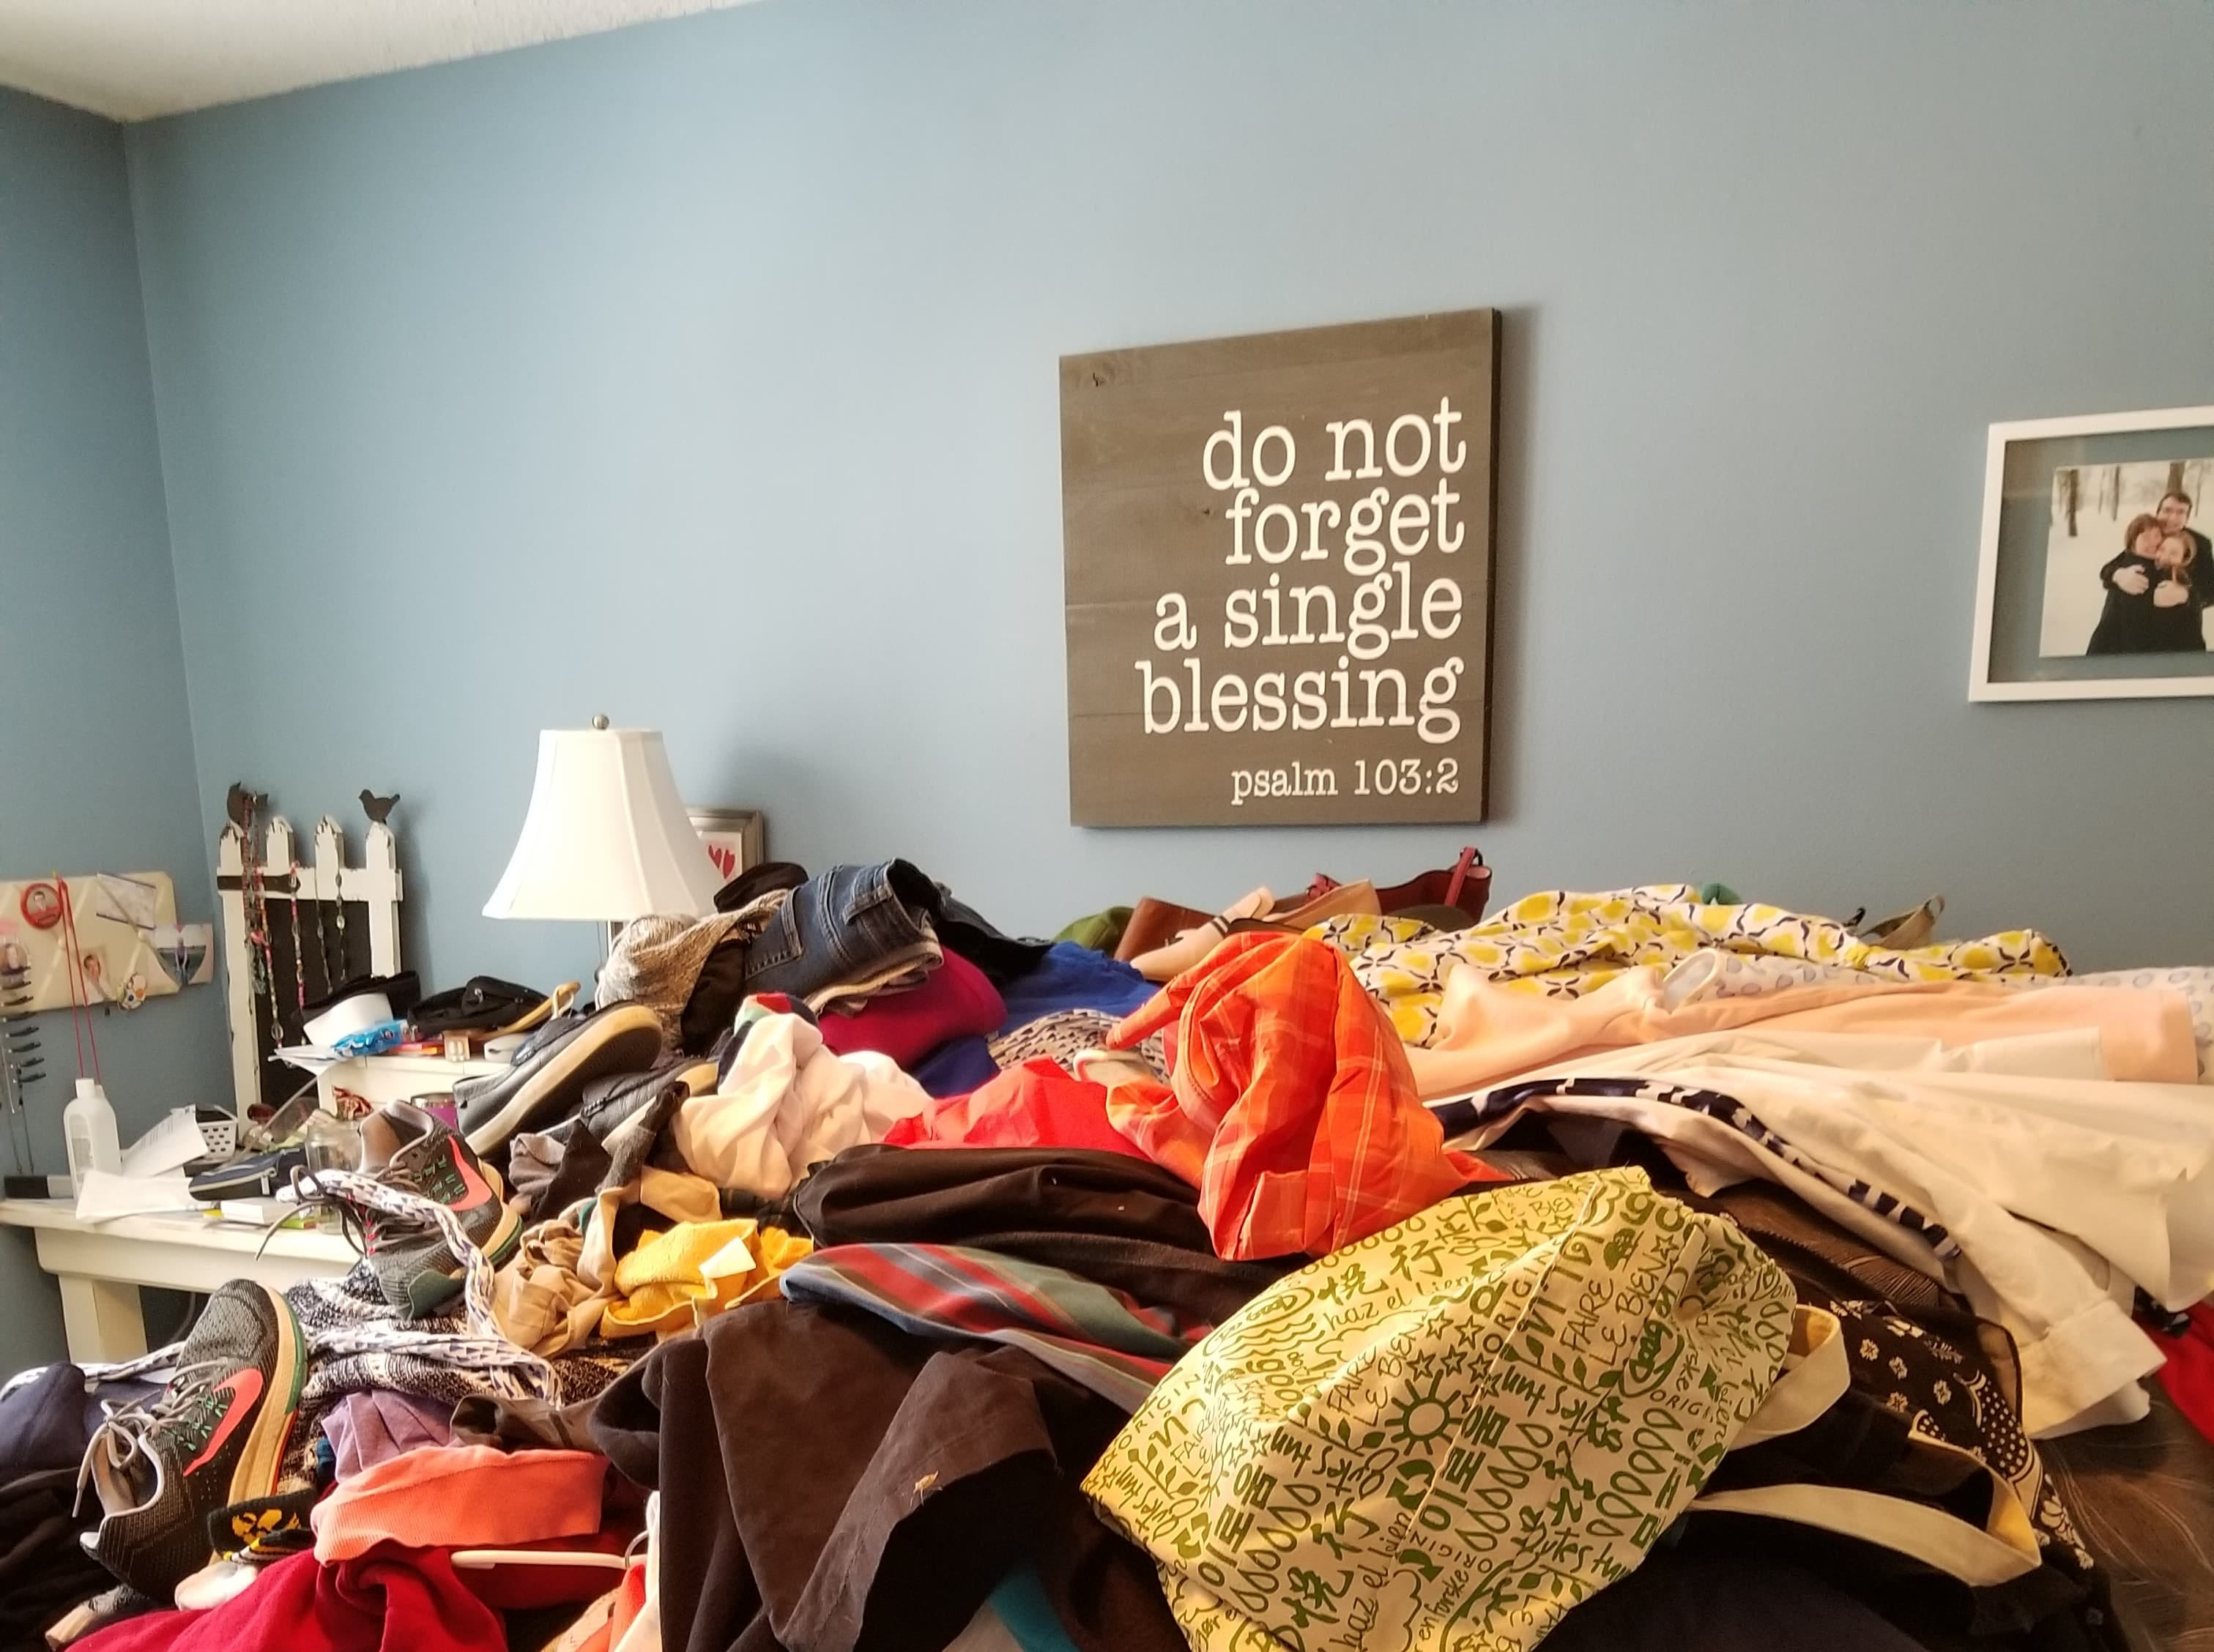 Following the KonMari method, Beth Dorsett pulled out all her clothing and placed it in one big pile before sifting through it.